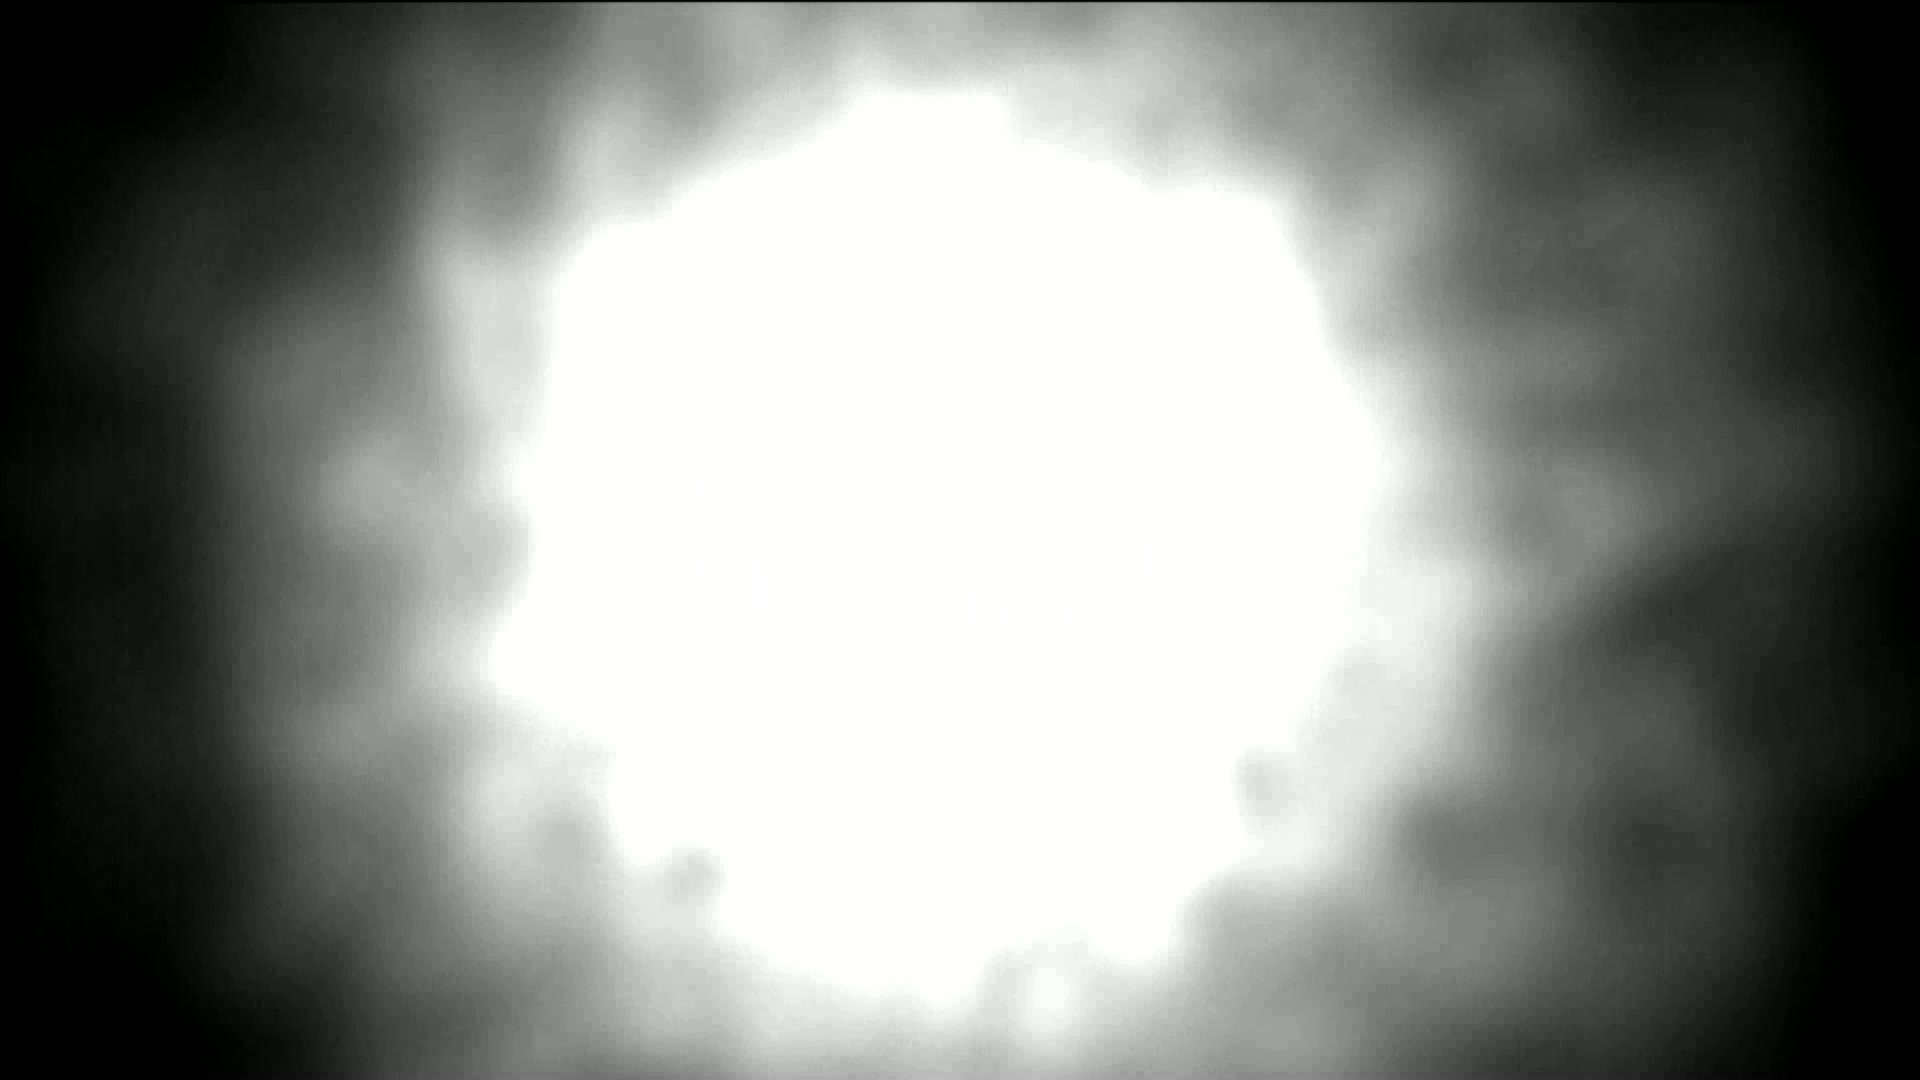 nuclear explosion dazzling white aura light beam bright fire truck clip art free fire clip art free black and white